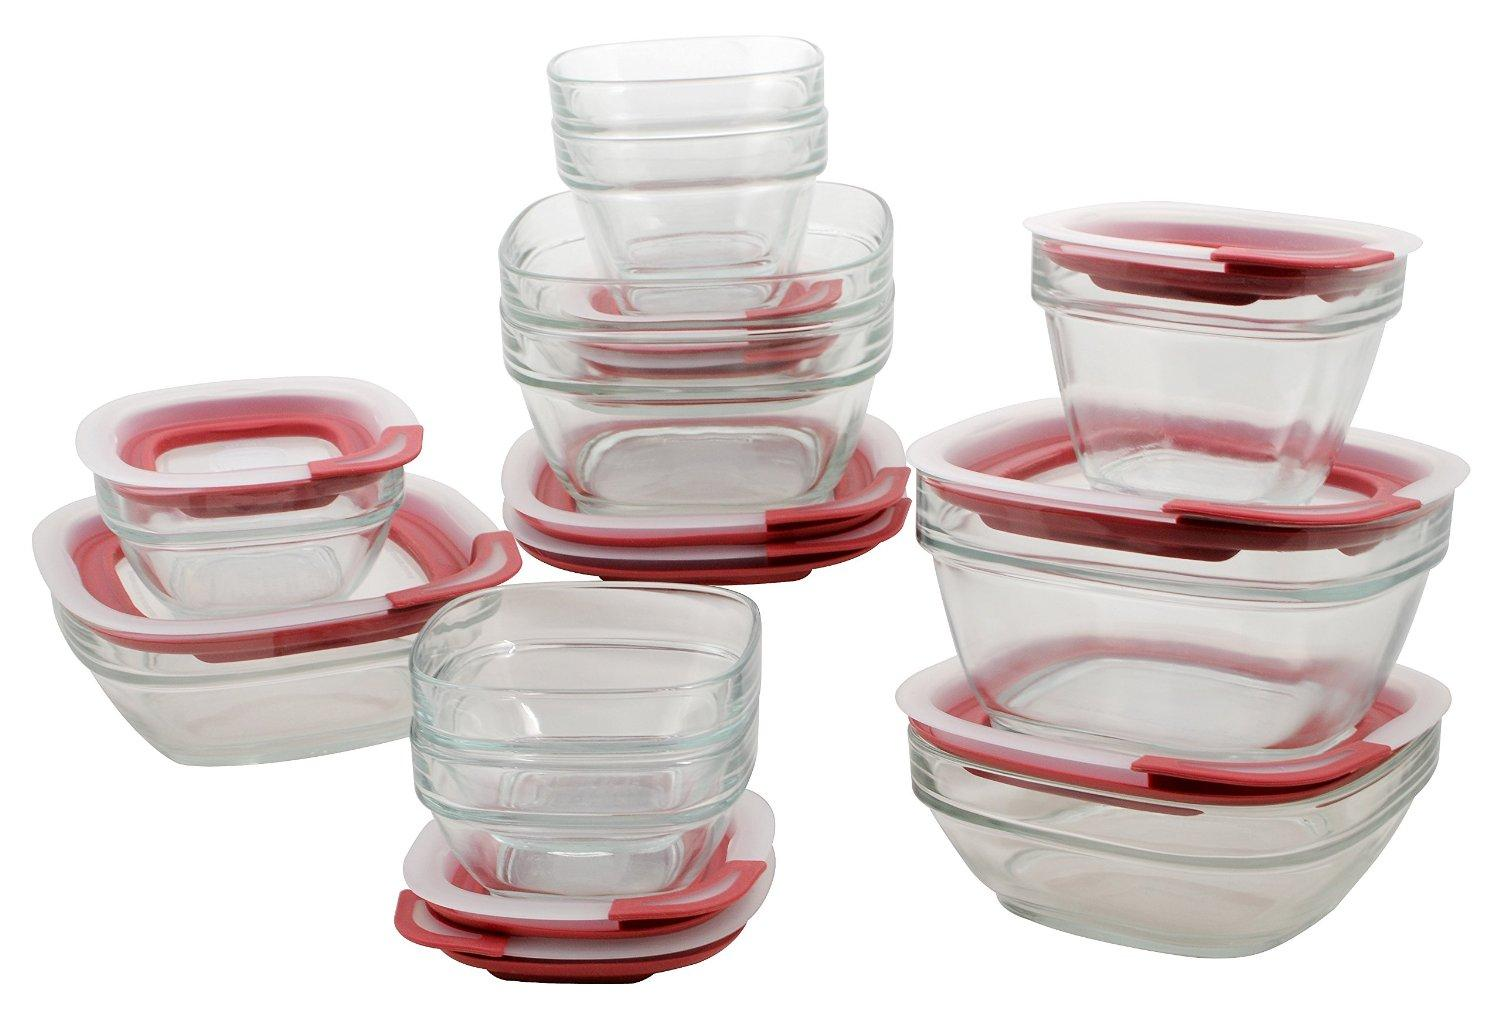 $29.98 Rubbermaid Easy Find Lid Glass Food Storage Set, 22-piece